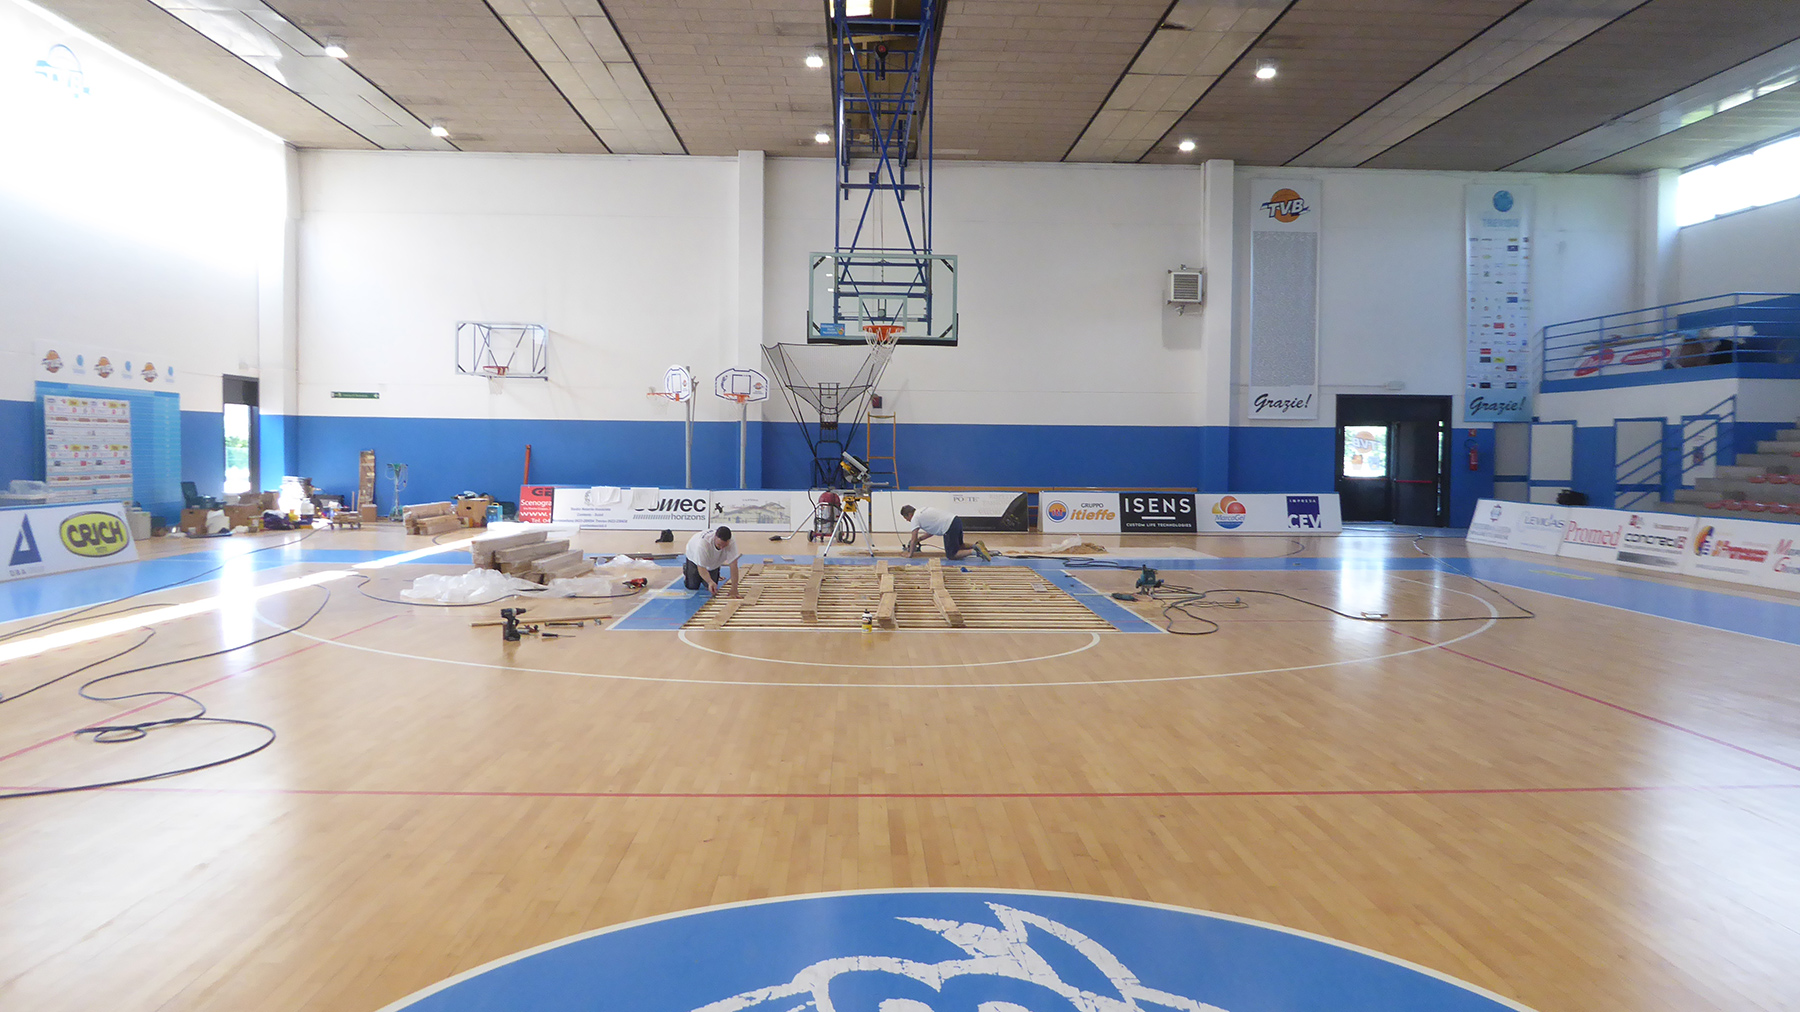 The technicians engaged with the laying of the parquet